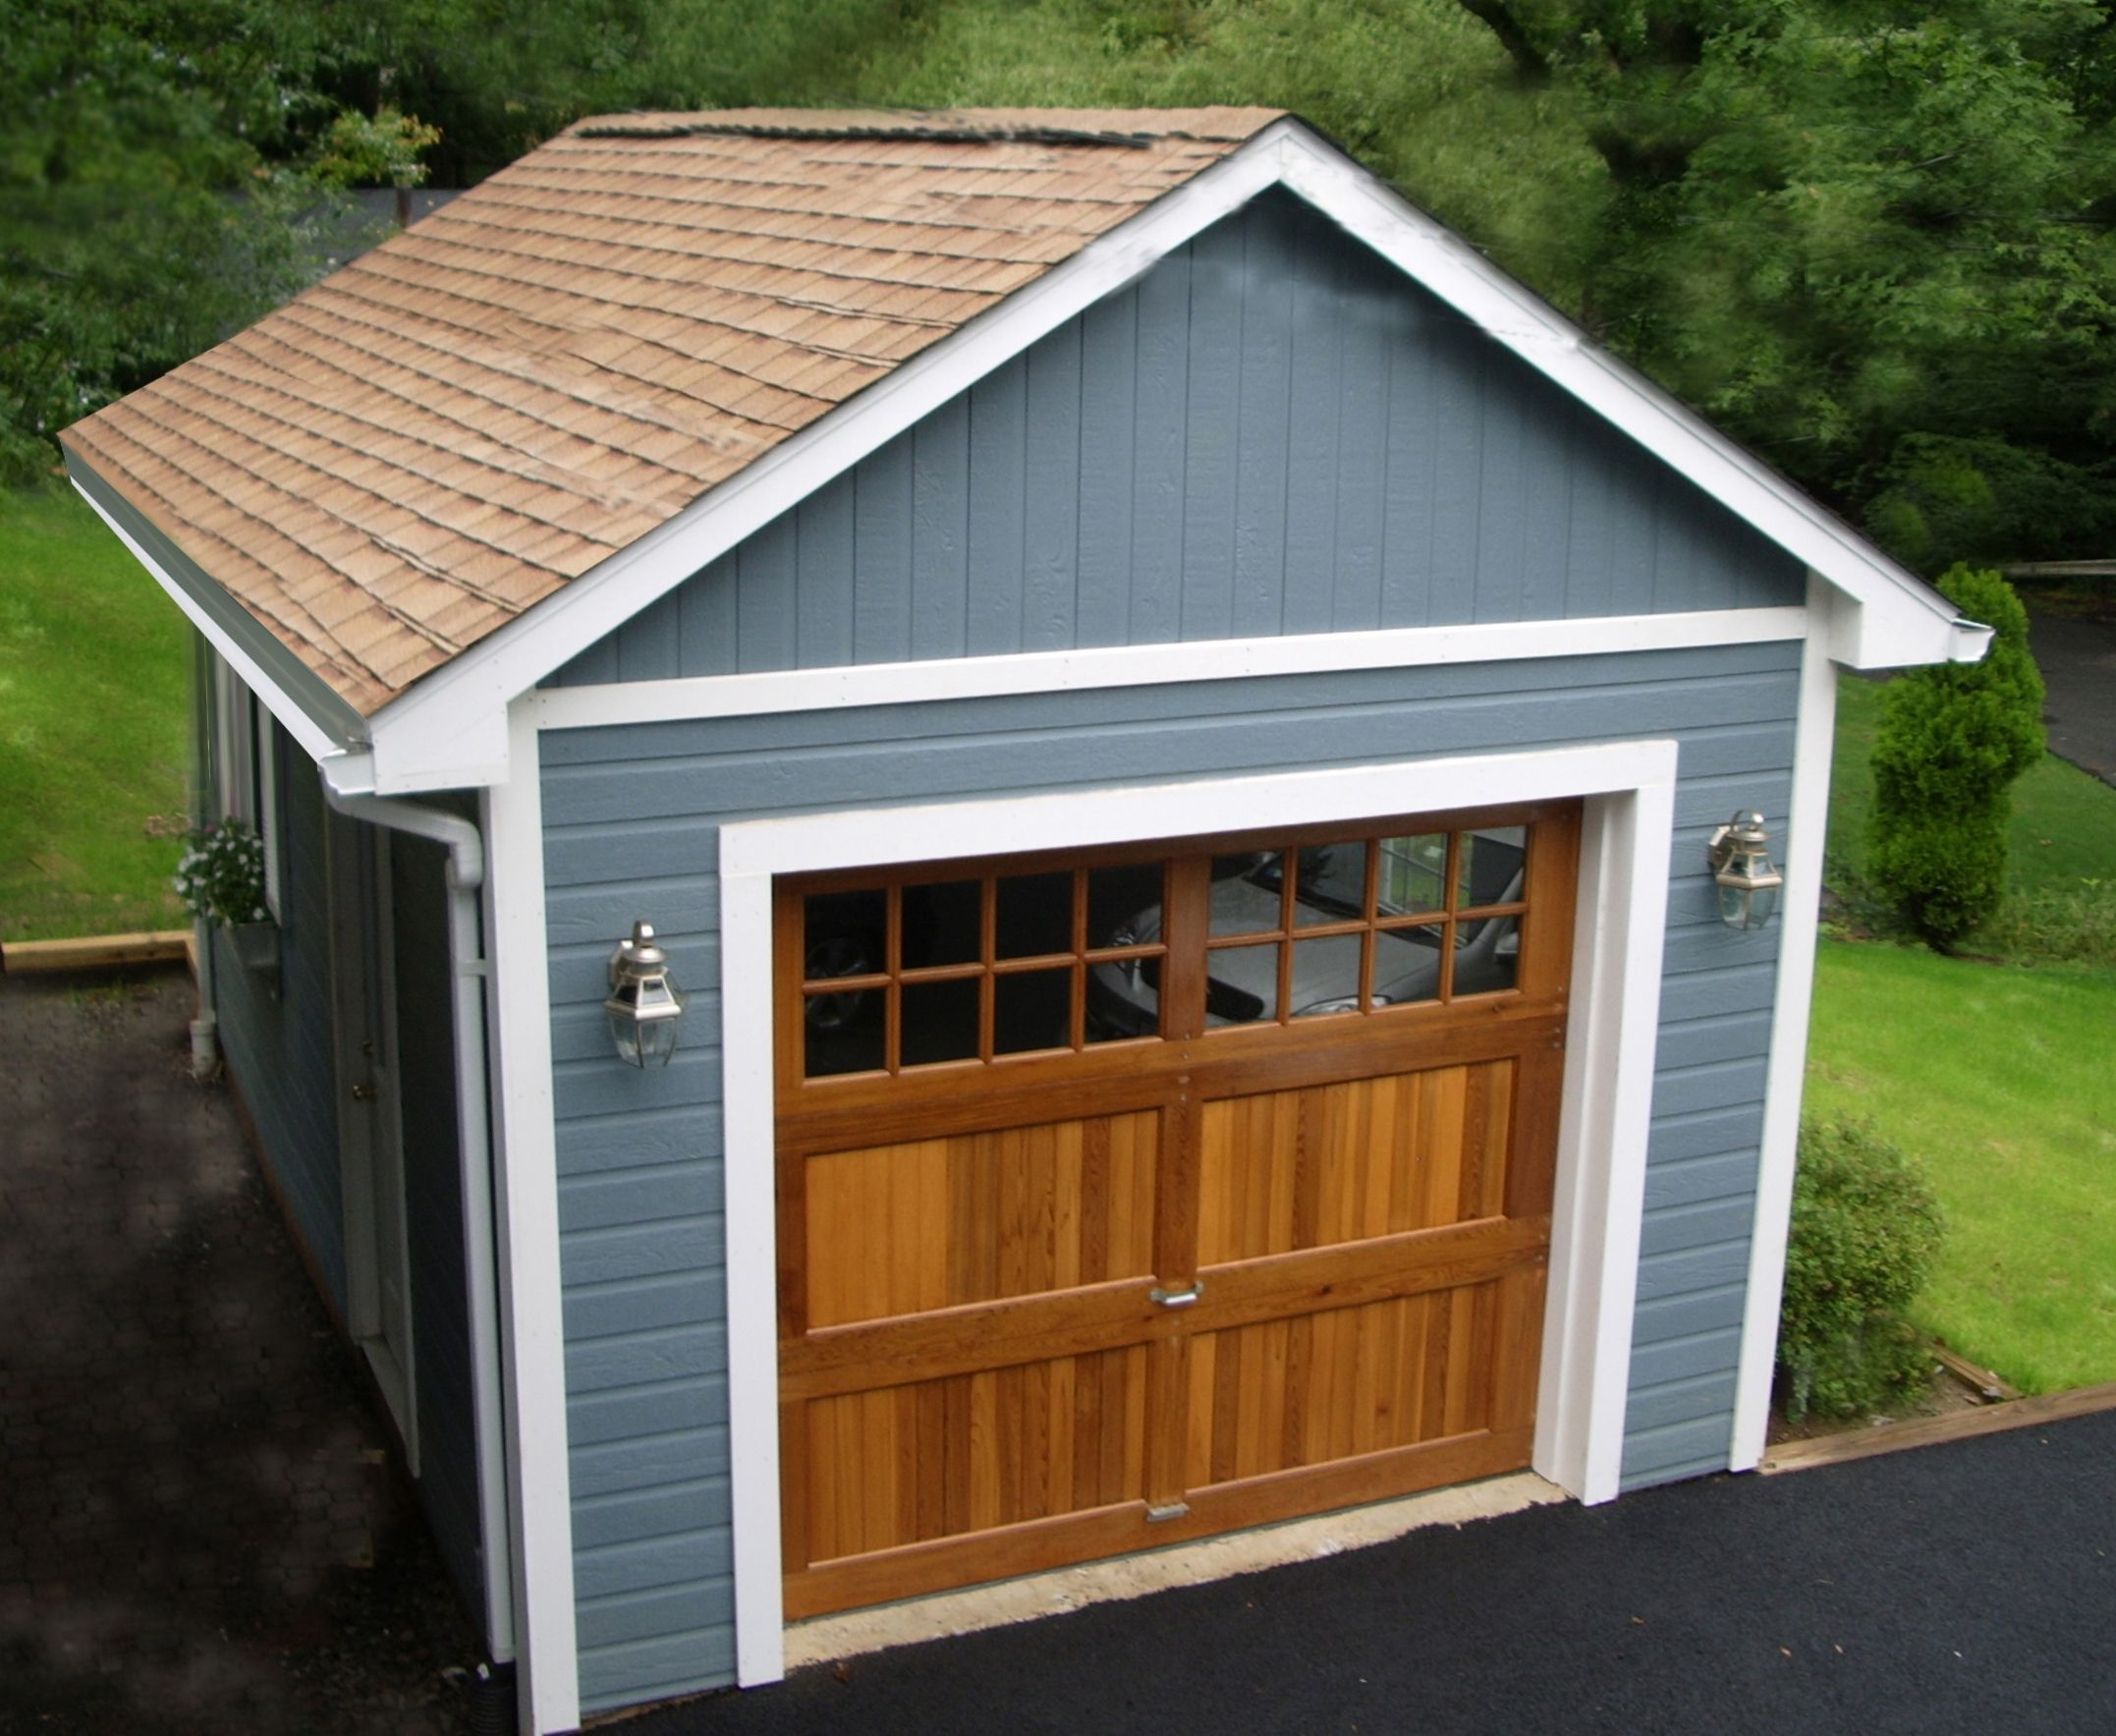 Mix and match a beautiful cedar garage door and some